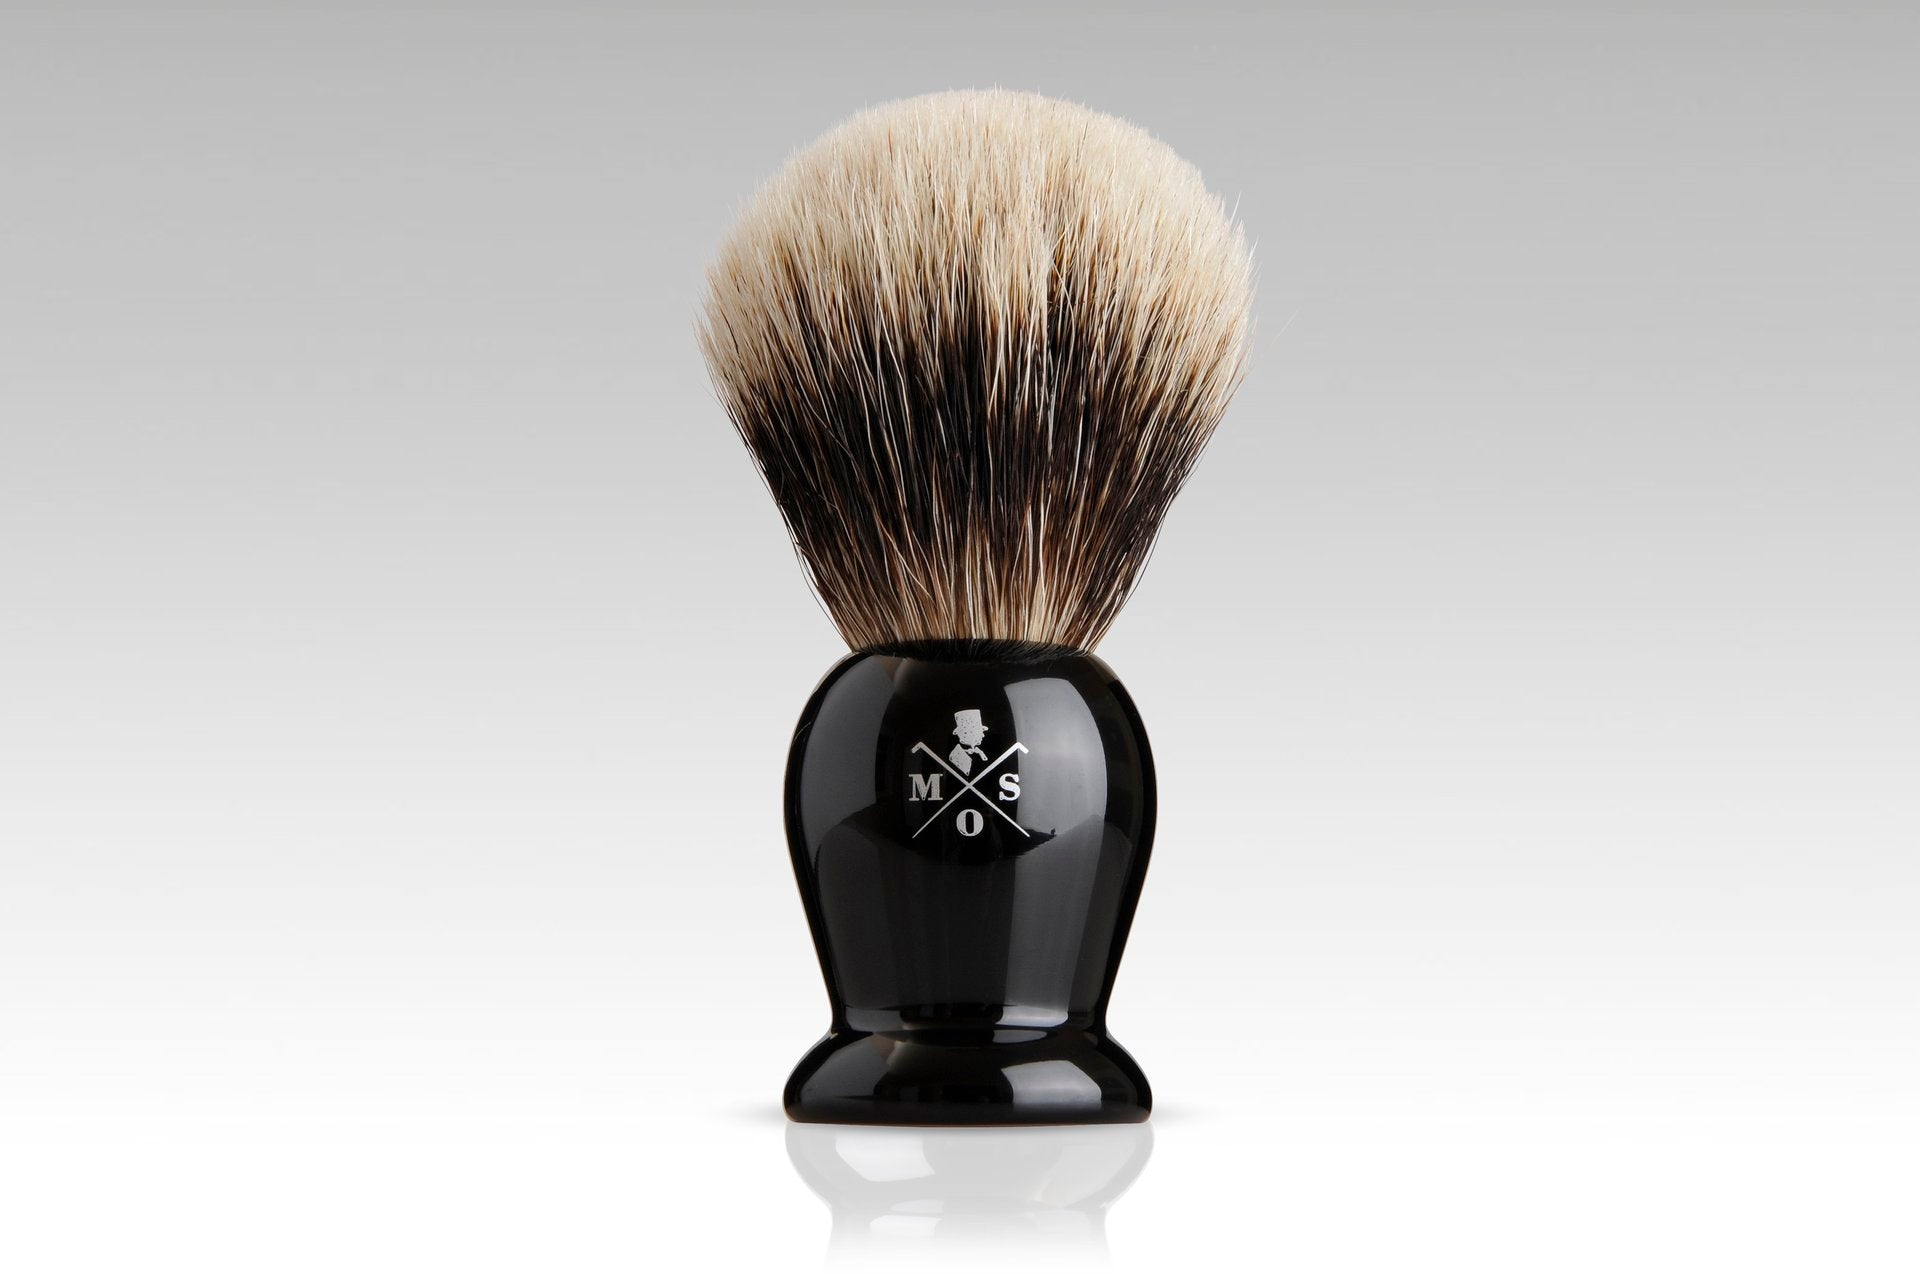 Ministry of Shave Shaving Brushes